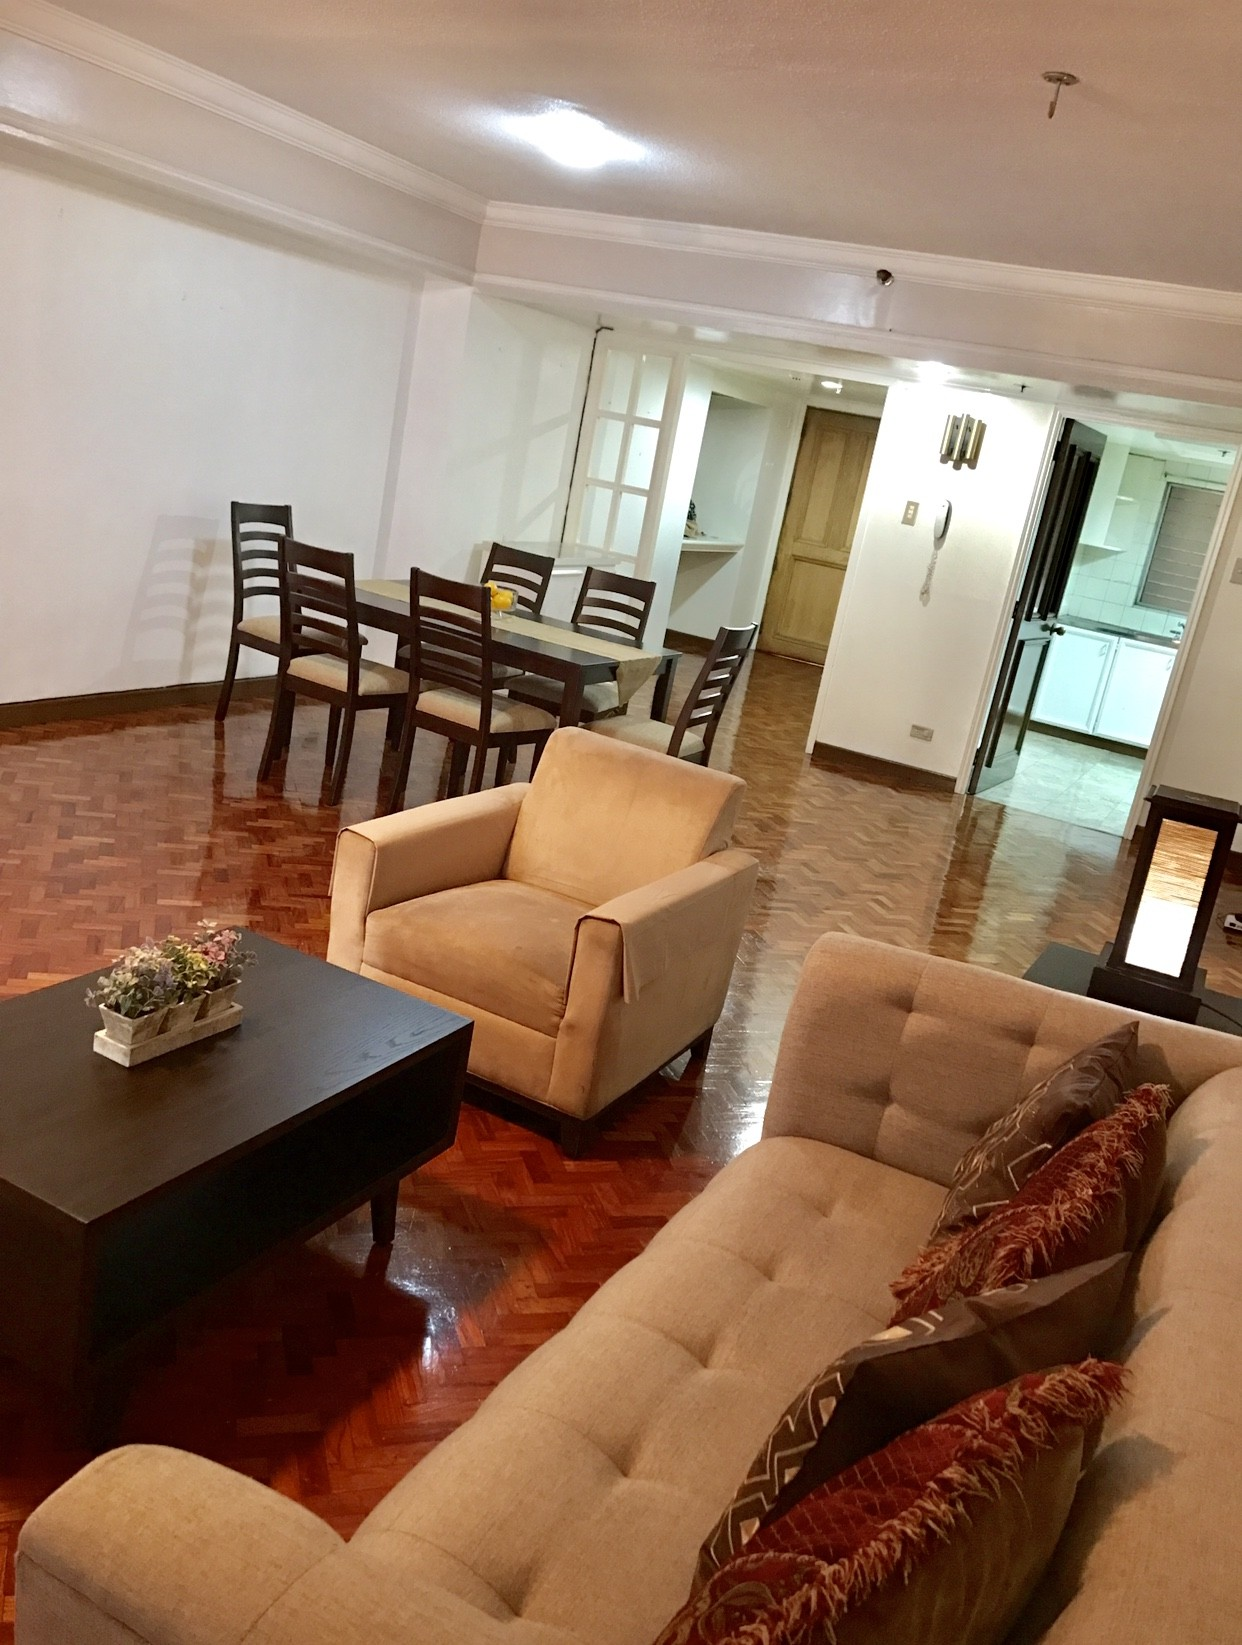 THE COLONNADE RESIDENCES Apartment & Condo Rentals 2BR Makati